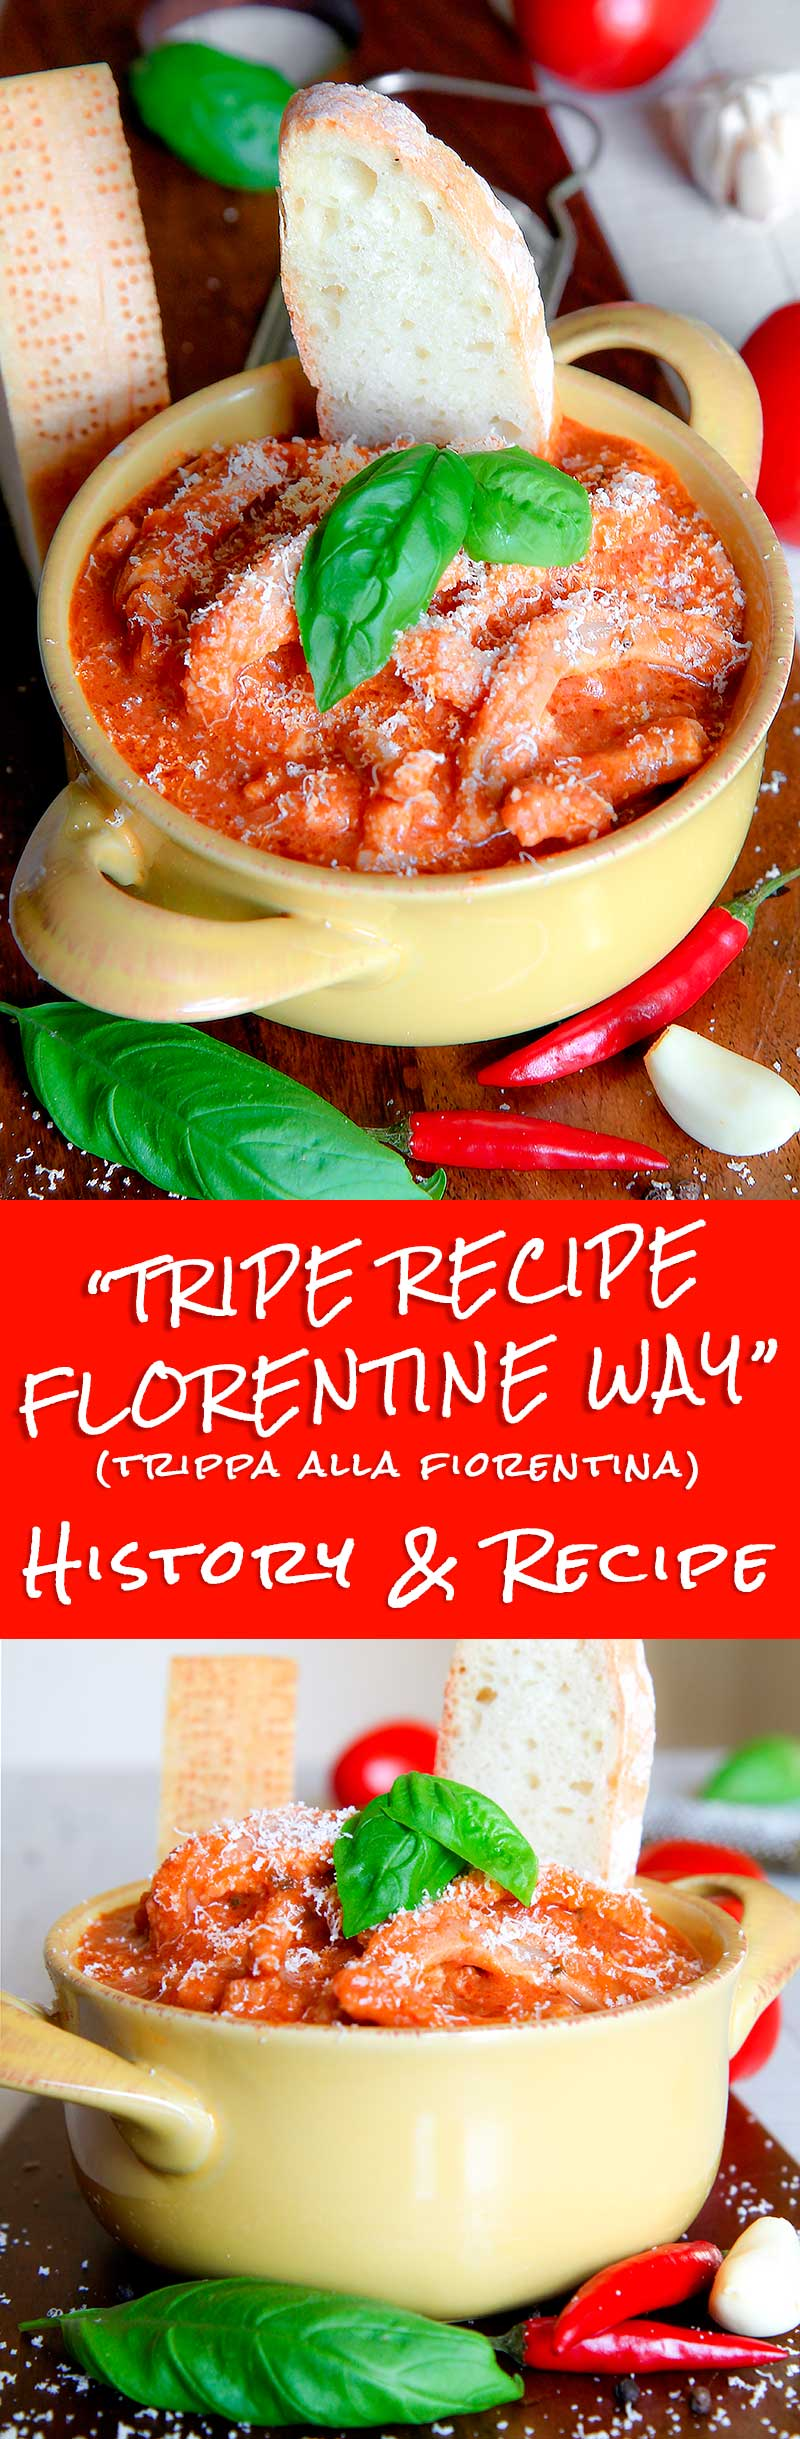 TRIPE RECIPE FLORENTINE WAY (trippa fiorentina) - All You Need To Know!